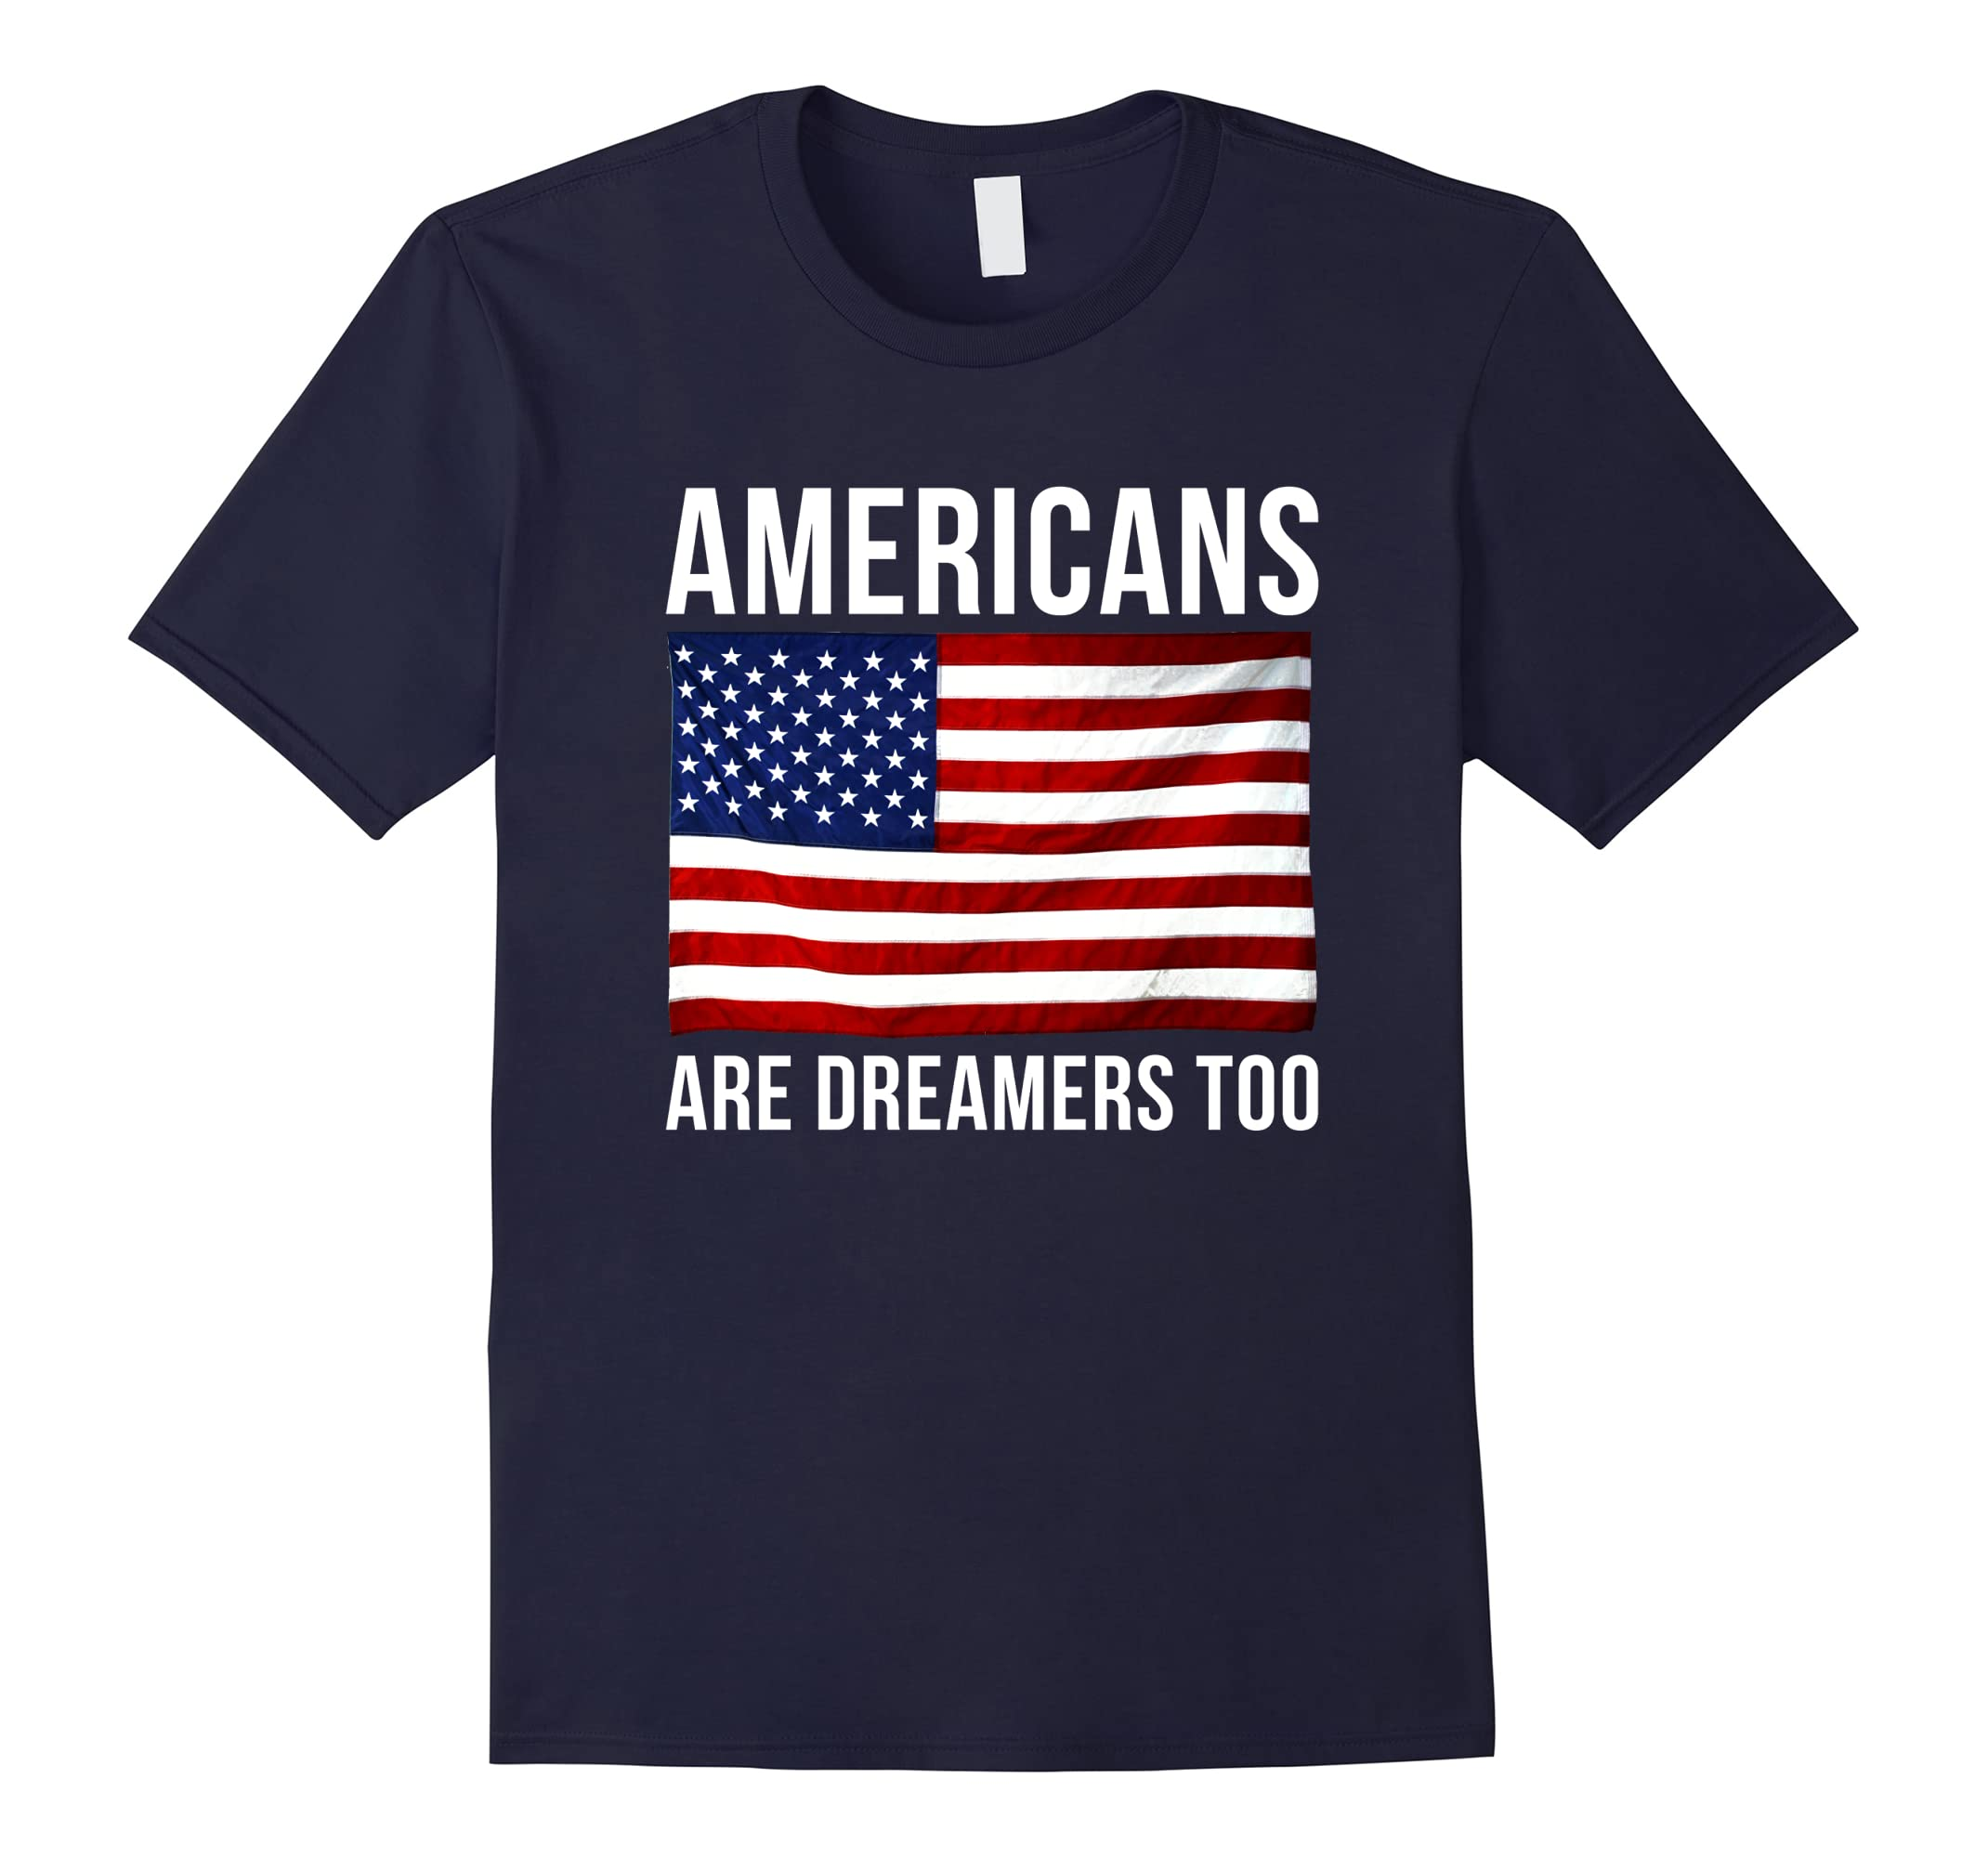 Americans Are Dreamers Too With Flag T-Shirt POTUS Speech-ah my shirt one gift